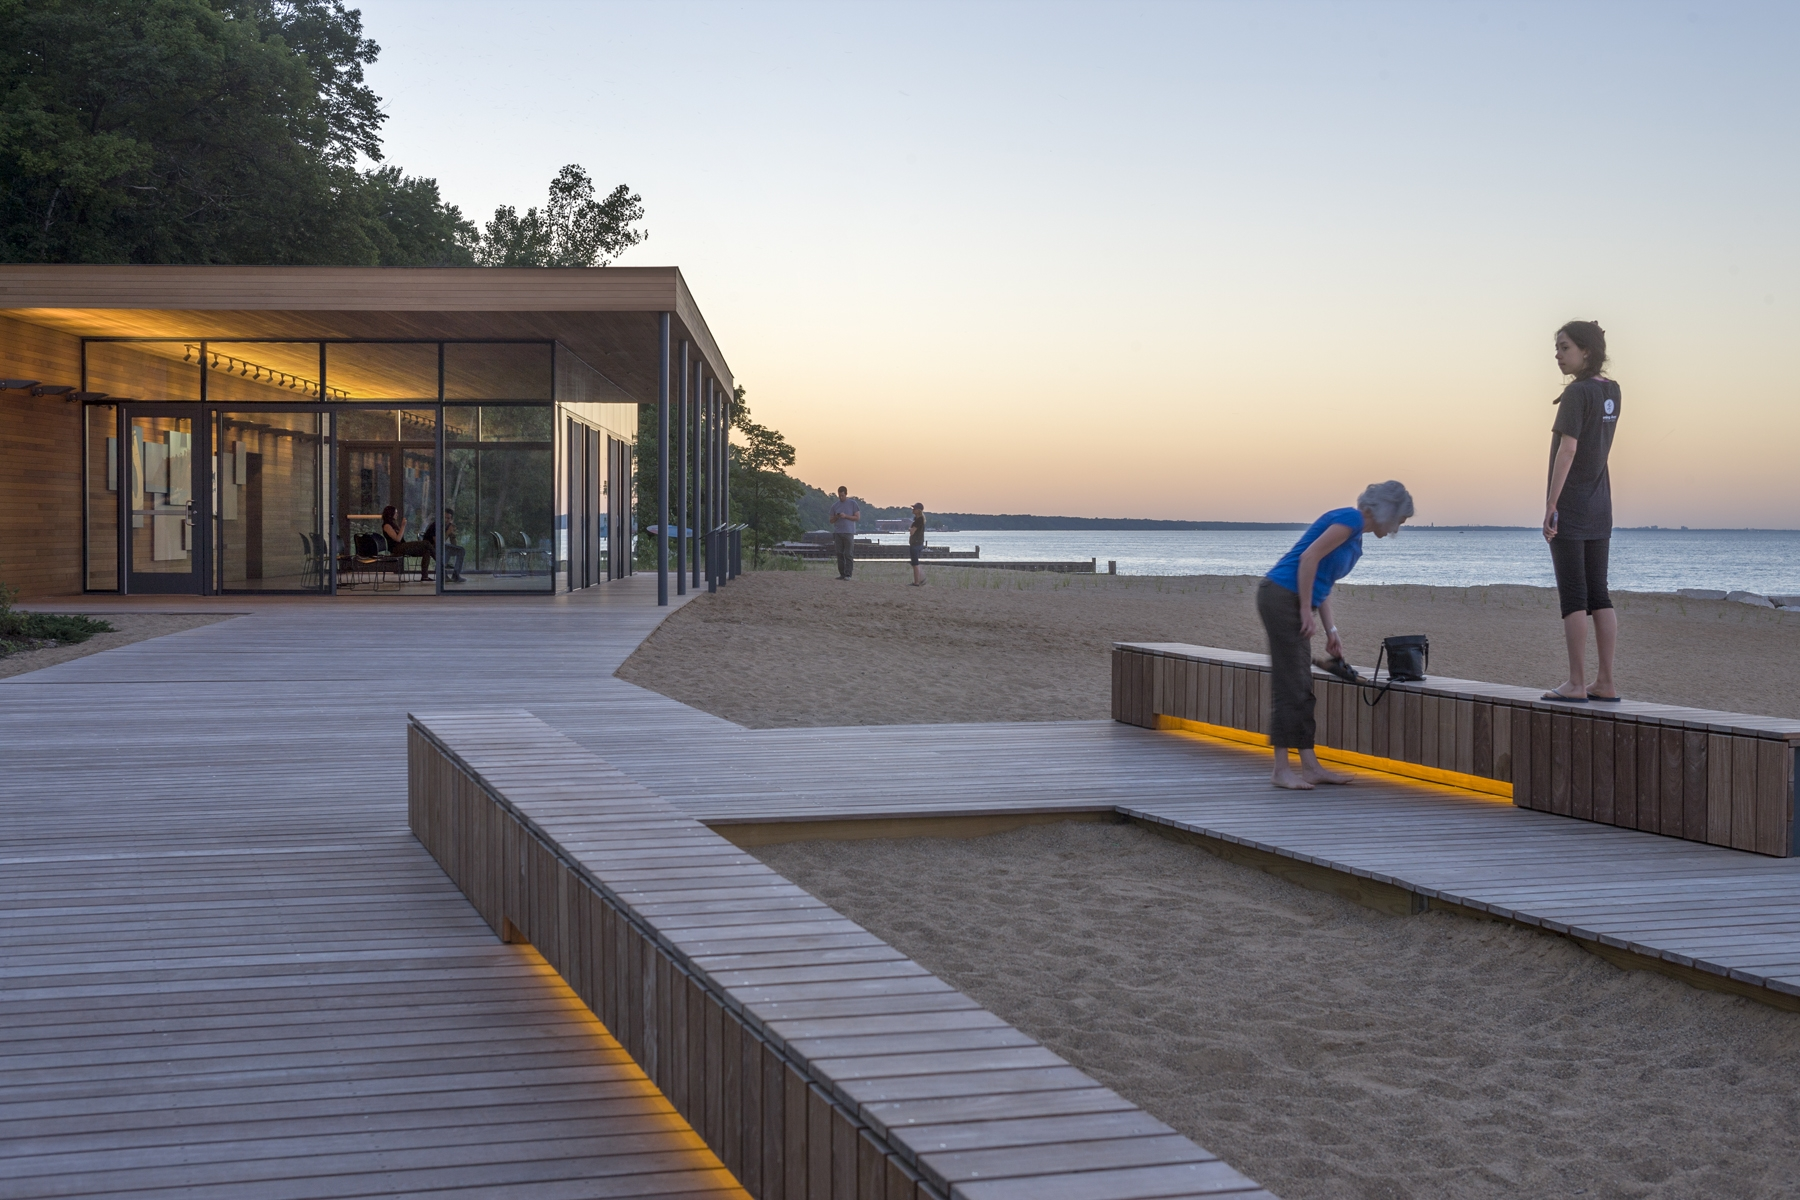 Rosewood Beach  Small Project Awards  AIA Chicago